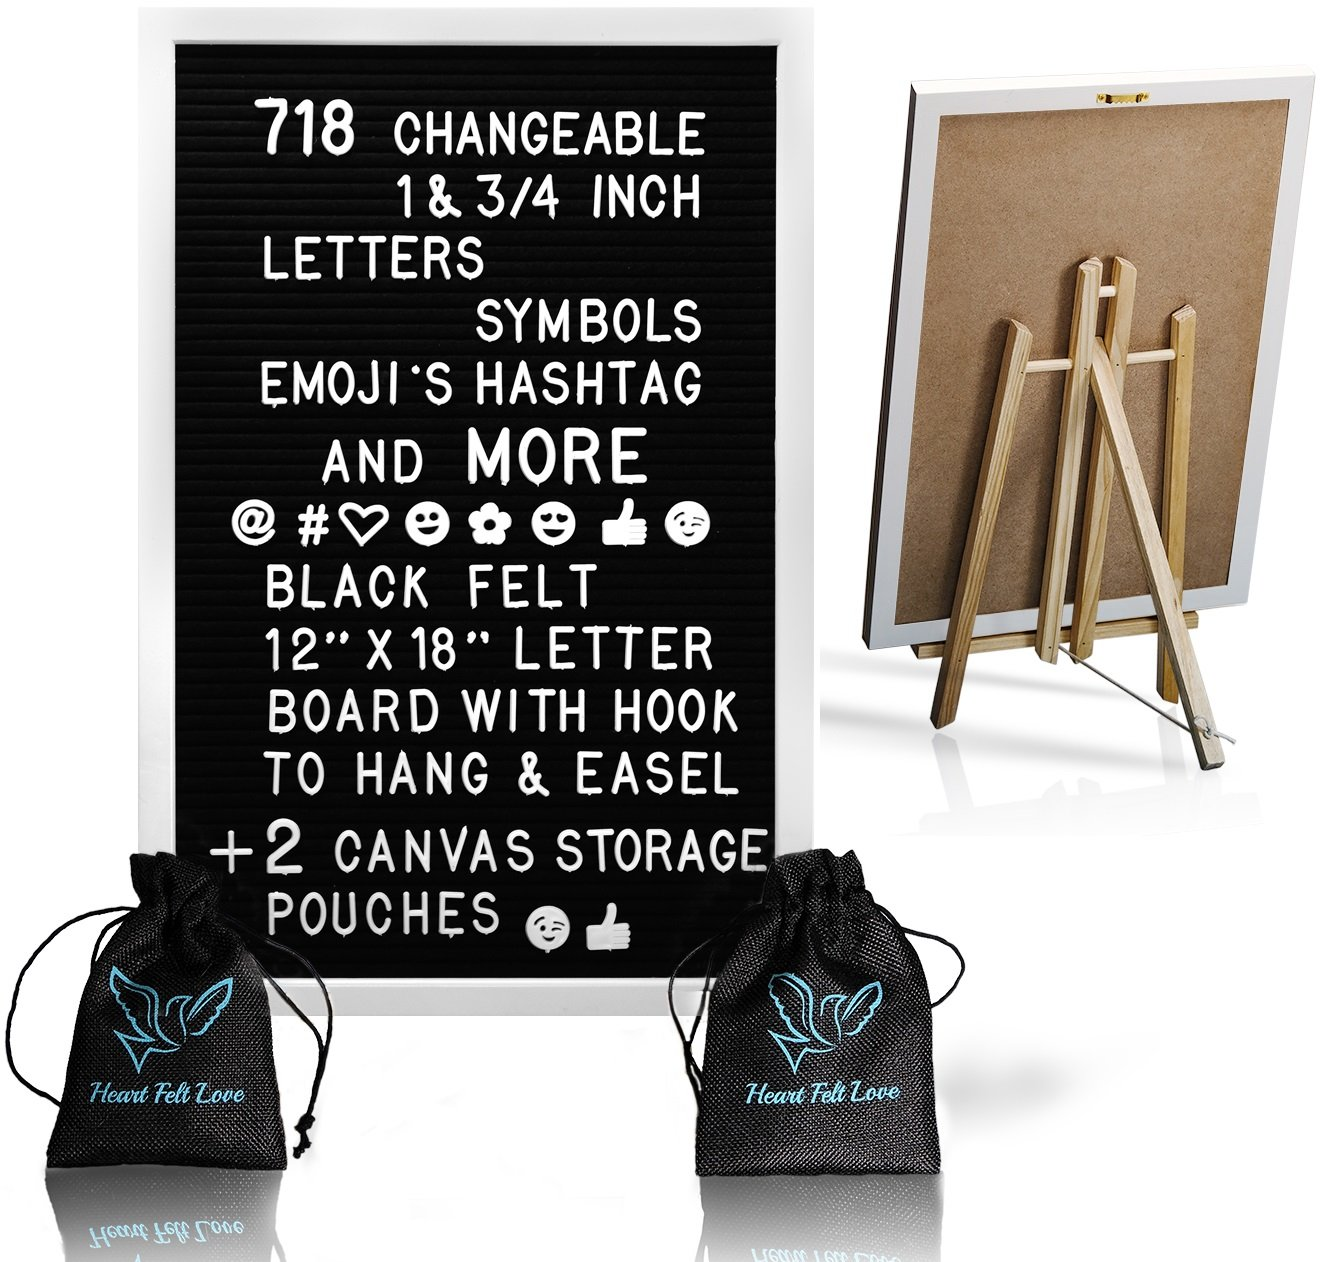 Black Felt Letter Board With White Aliminium Frame And Easel Stand 12 x 18 | 718 Changeable Characters Including 1 inch and ¾ Letters, Symbols, Emojis Hashtag + More | Hook To Hang | 2 Storage Pouches